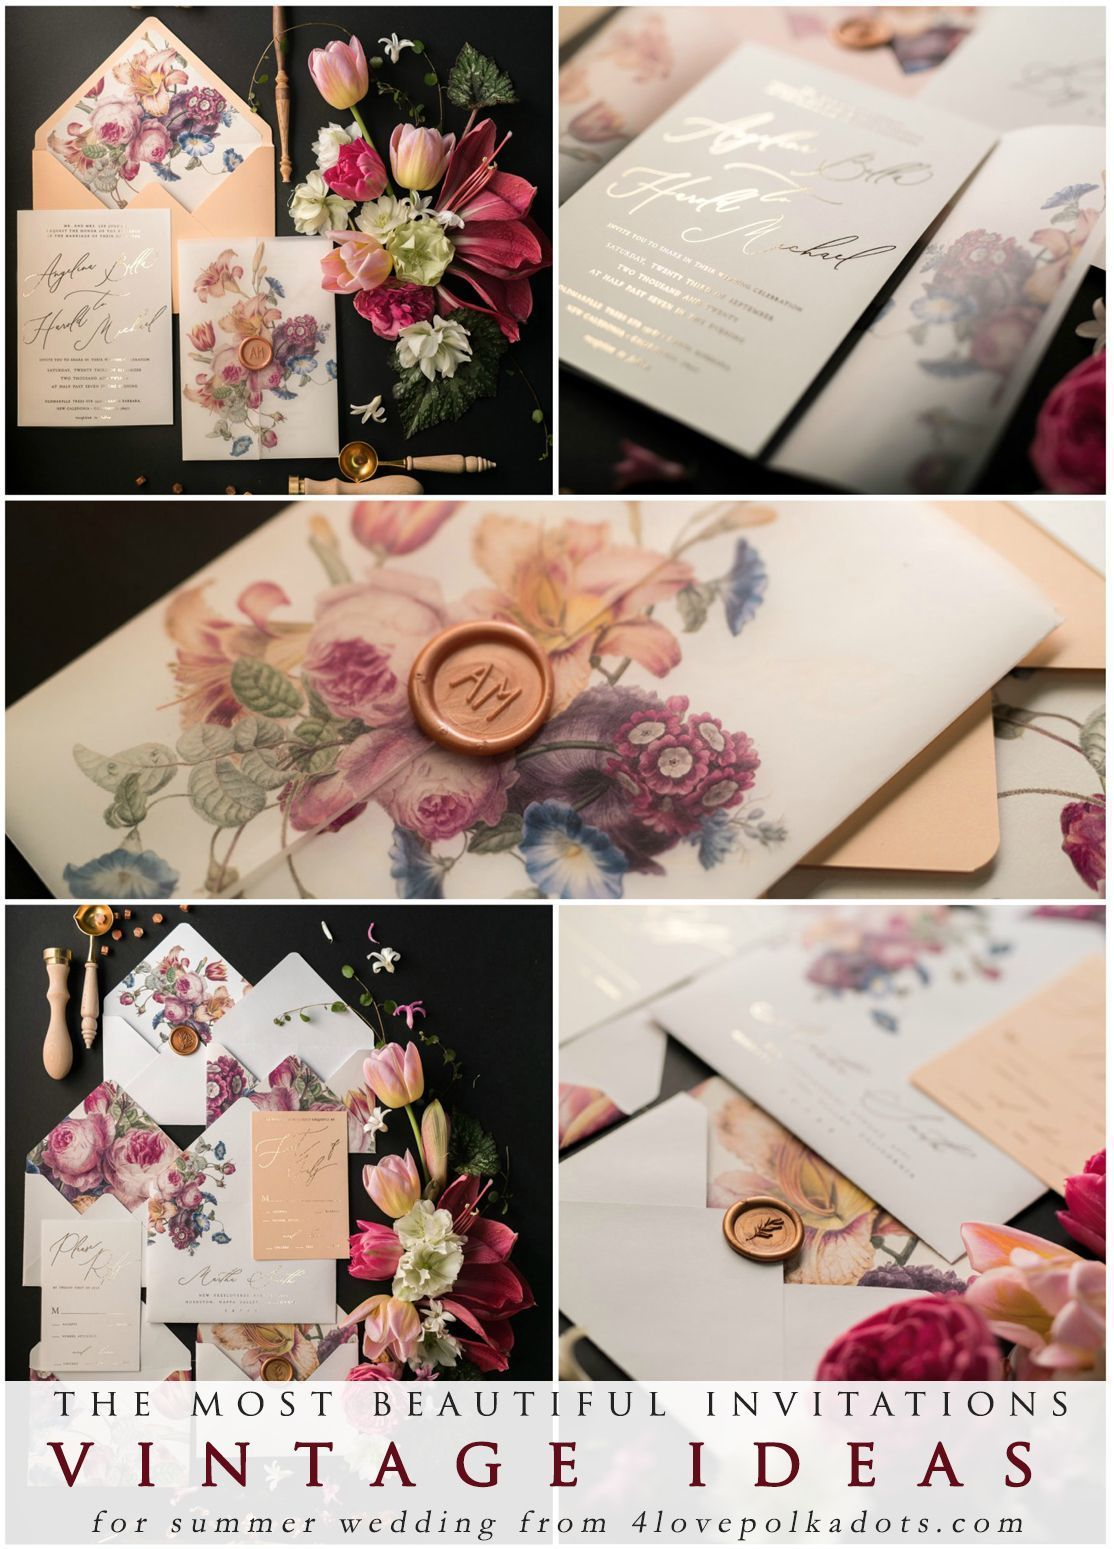 The most beautiful wedding invitations - beautiful idea for romantic ...